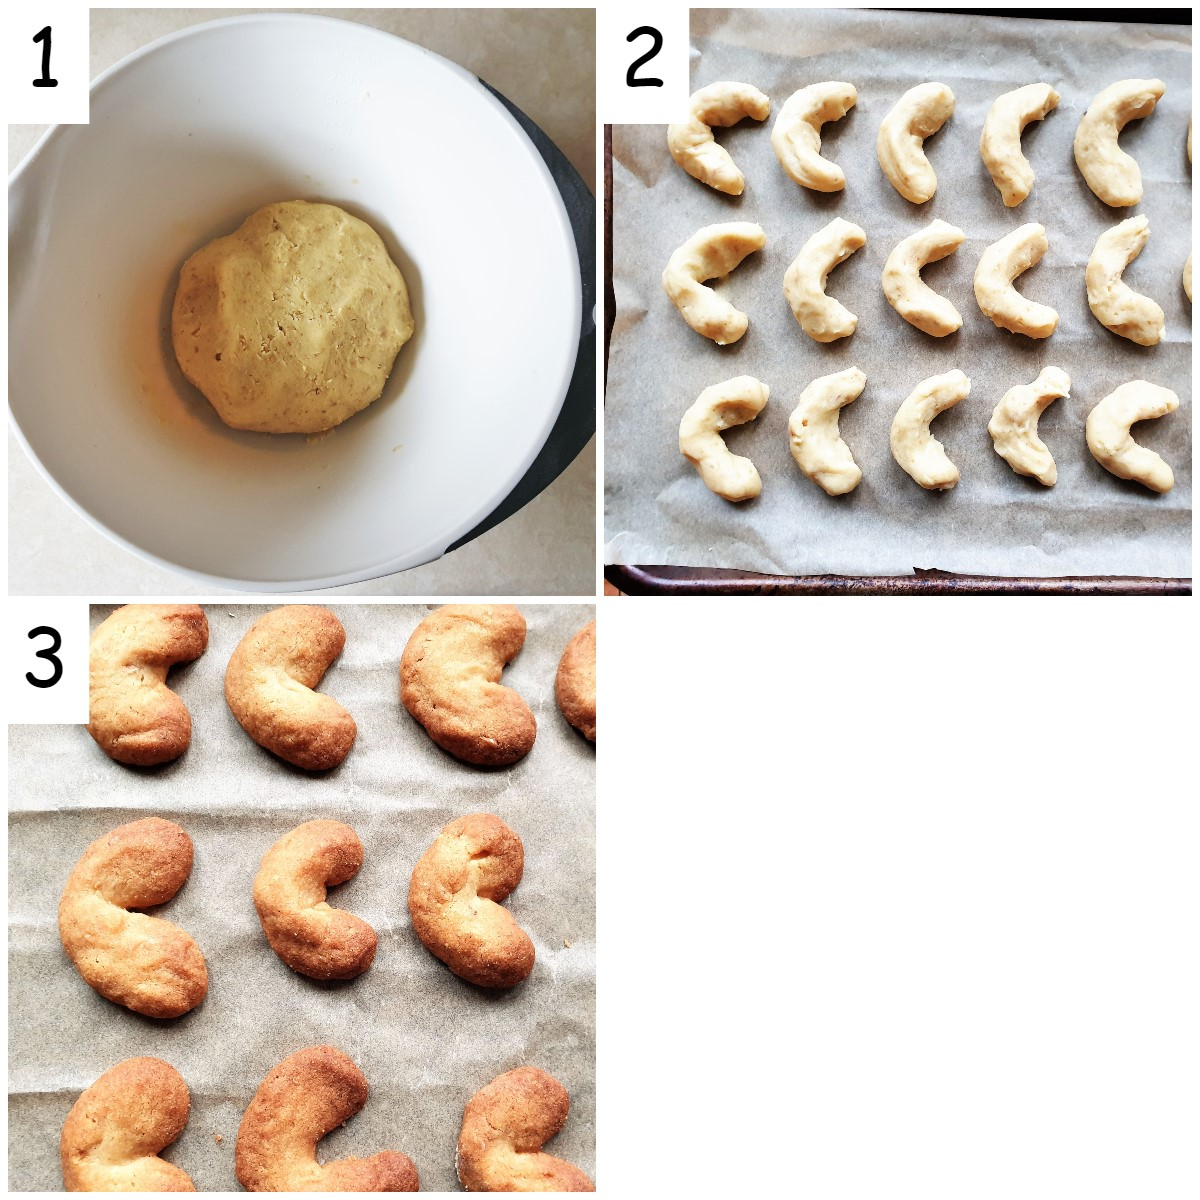 Steps to roll and bake walnut crescent cookies